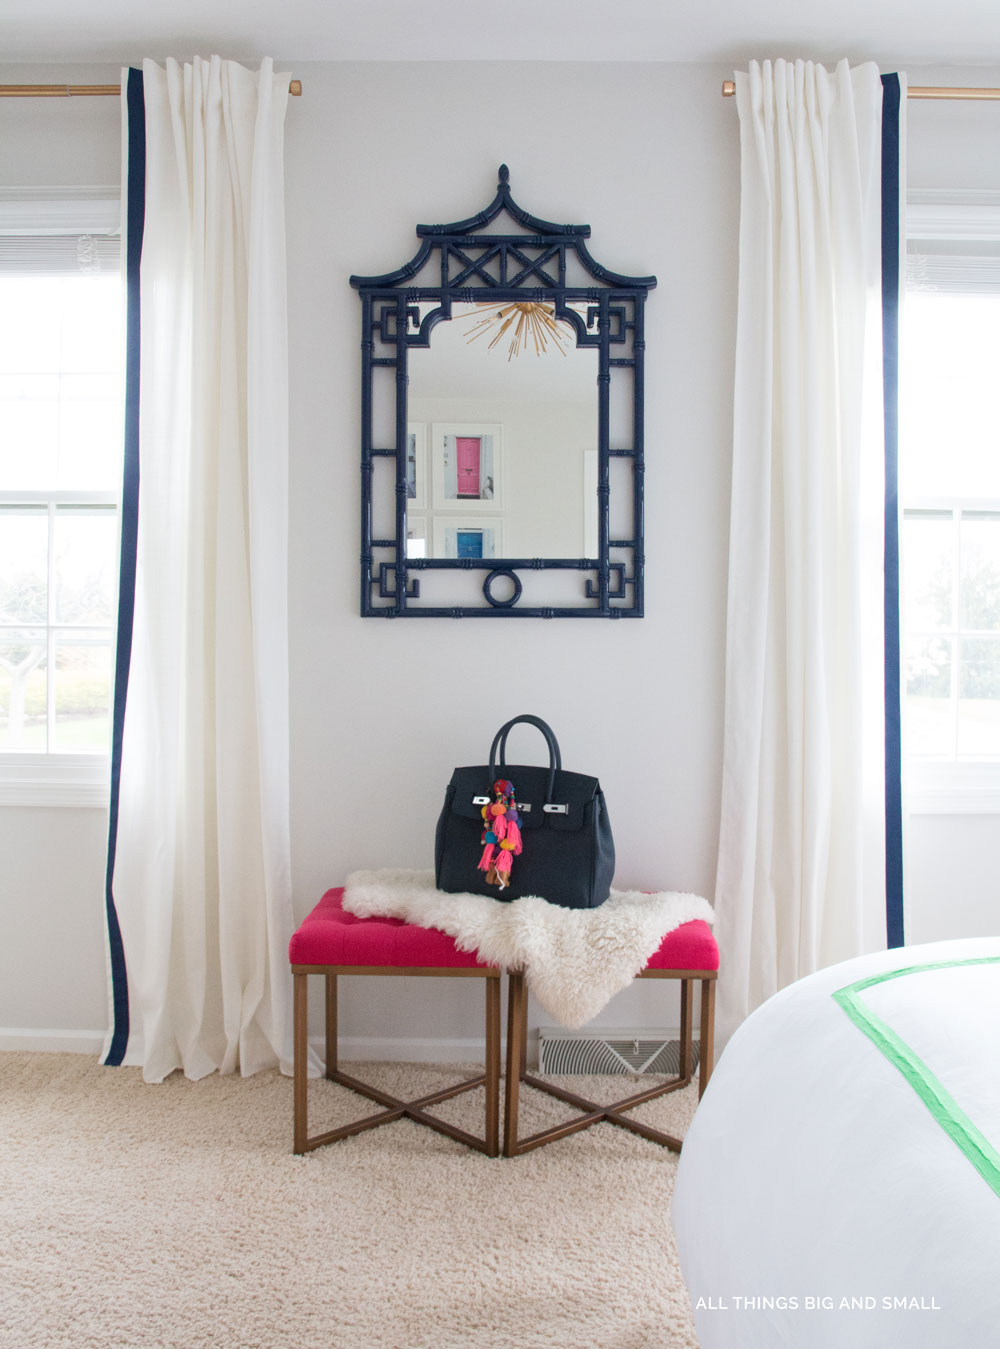 Budget Friendly Master Bedroom Makeoverr- One Room Challenge - ALL THINGS BIG AND SMALL